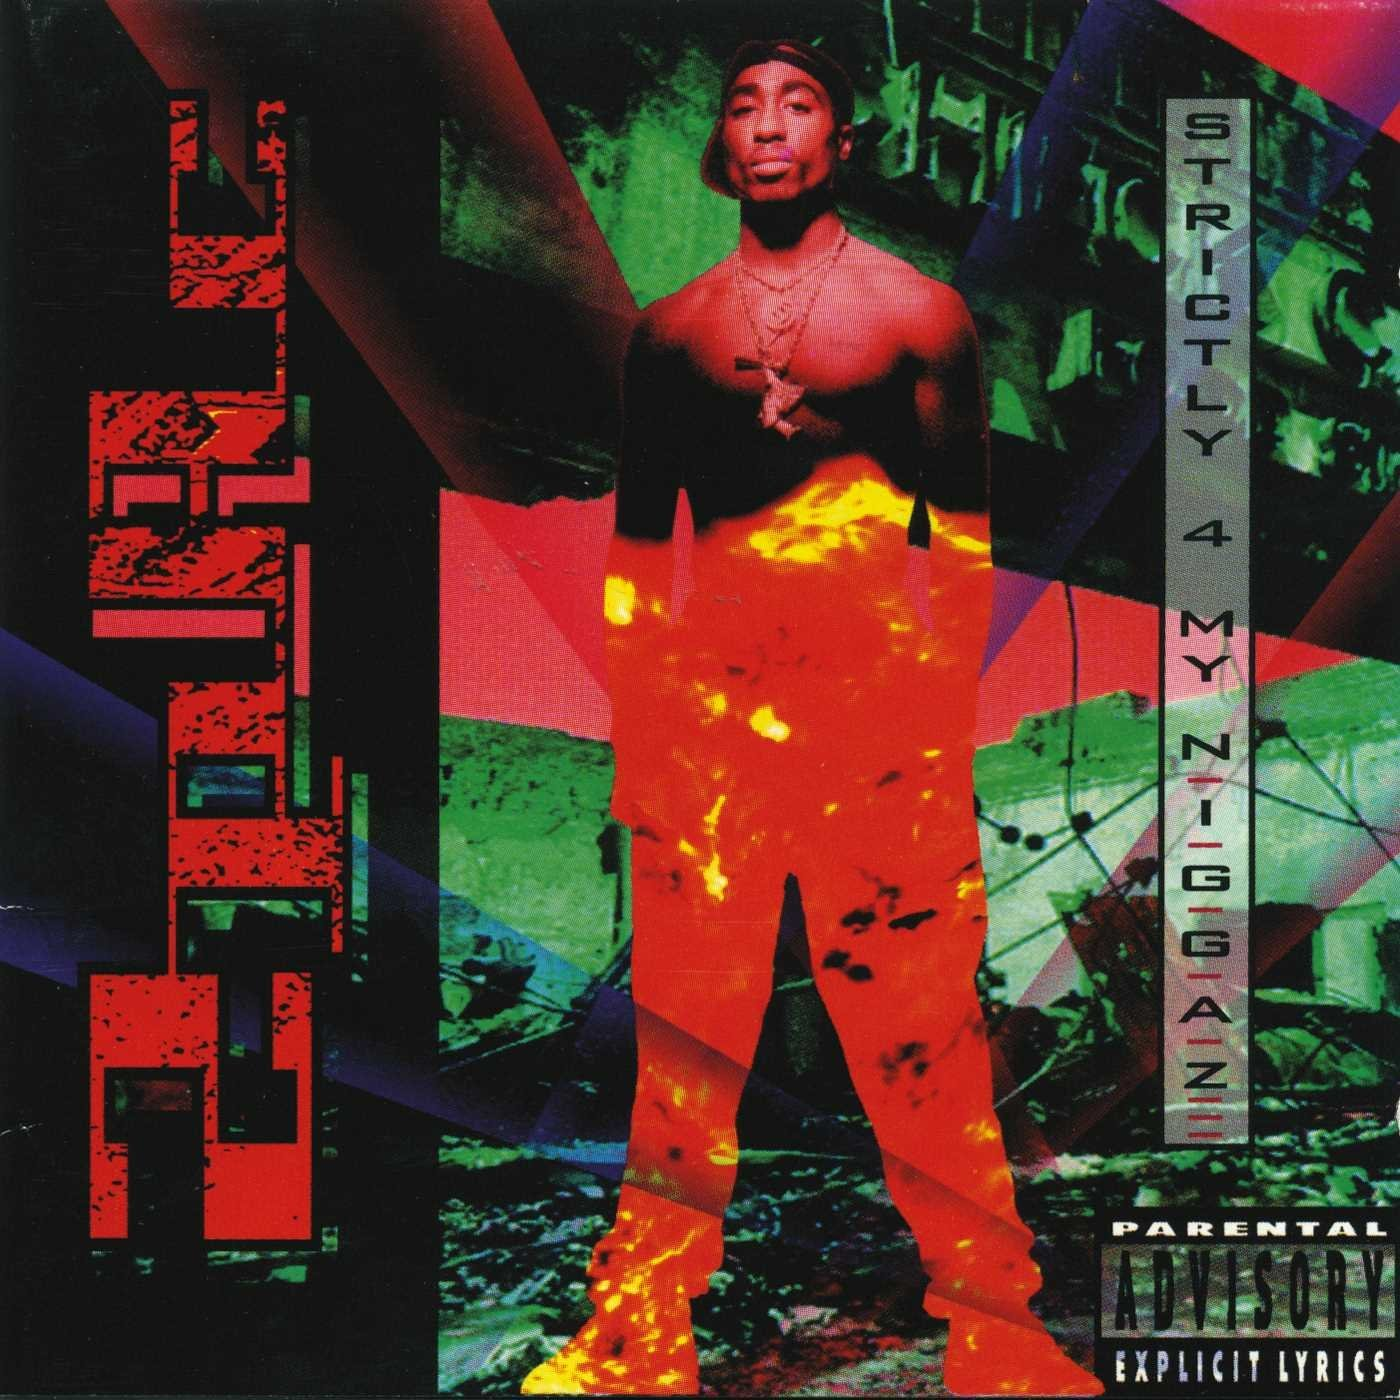 Revisit: 2Pac: Strictly 4 My N I G G A Z  - Spectrum Culture